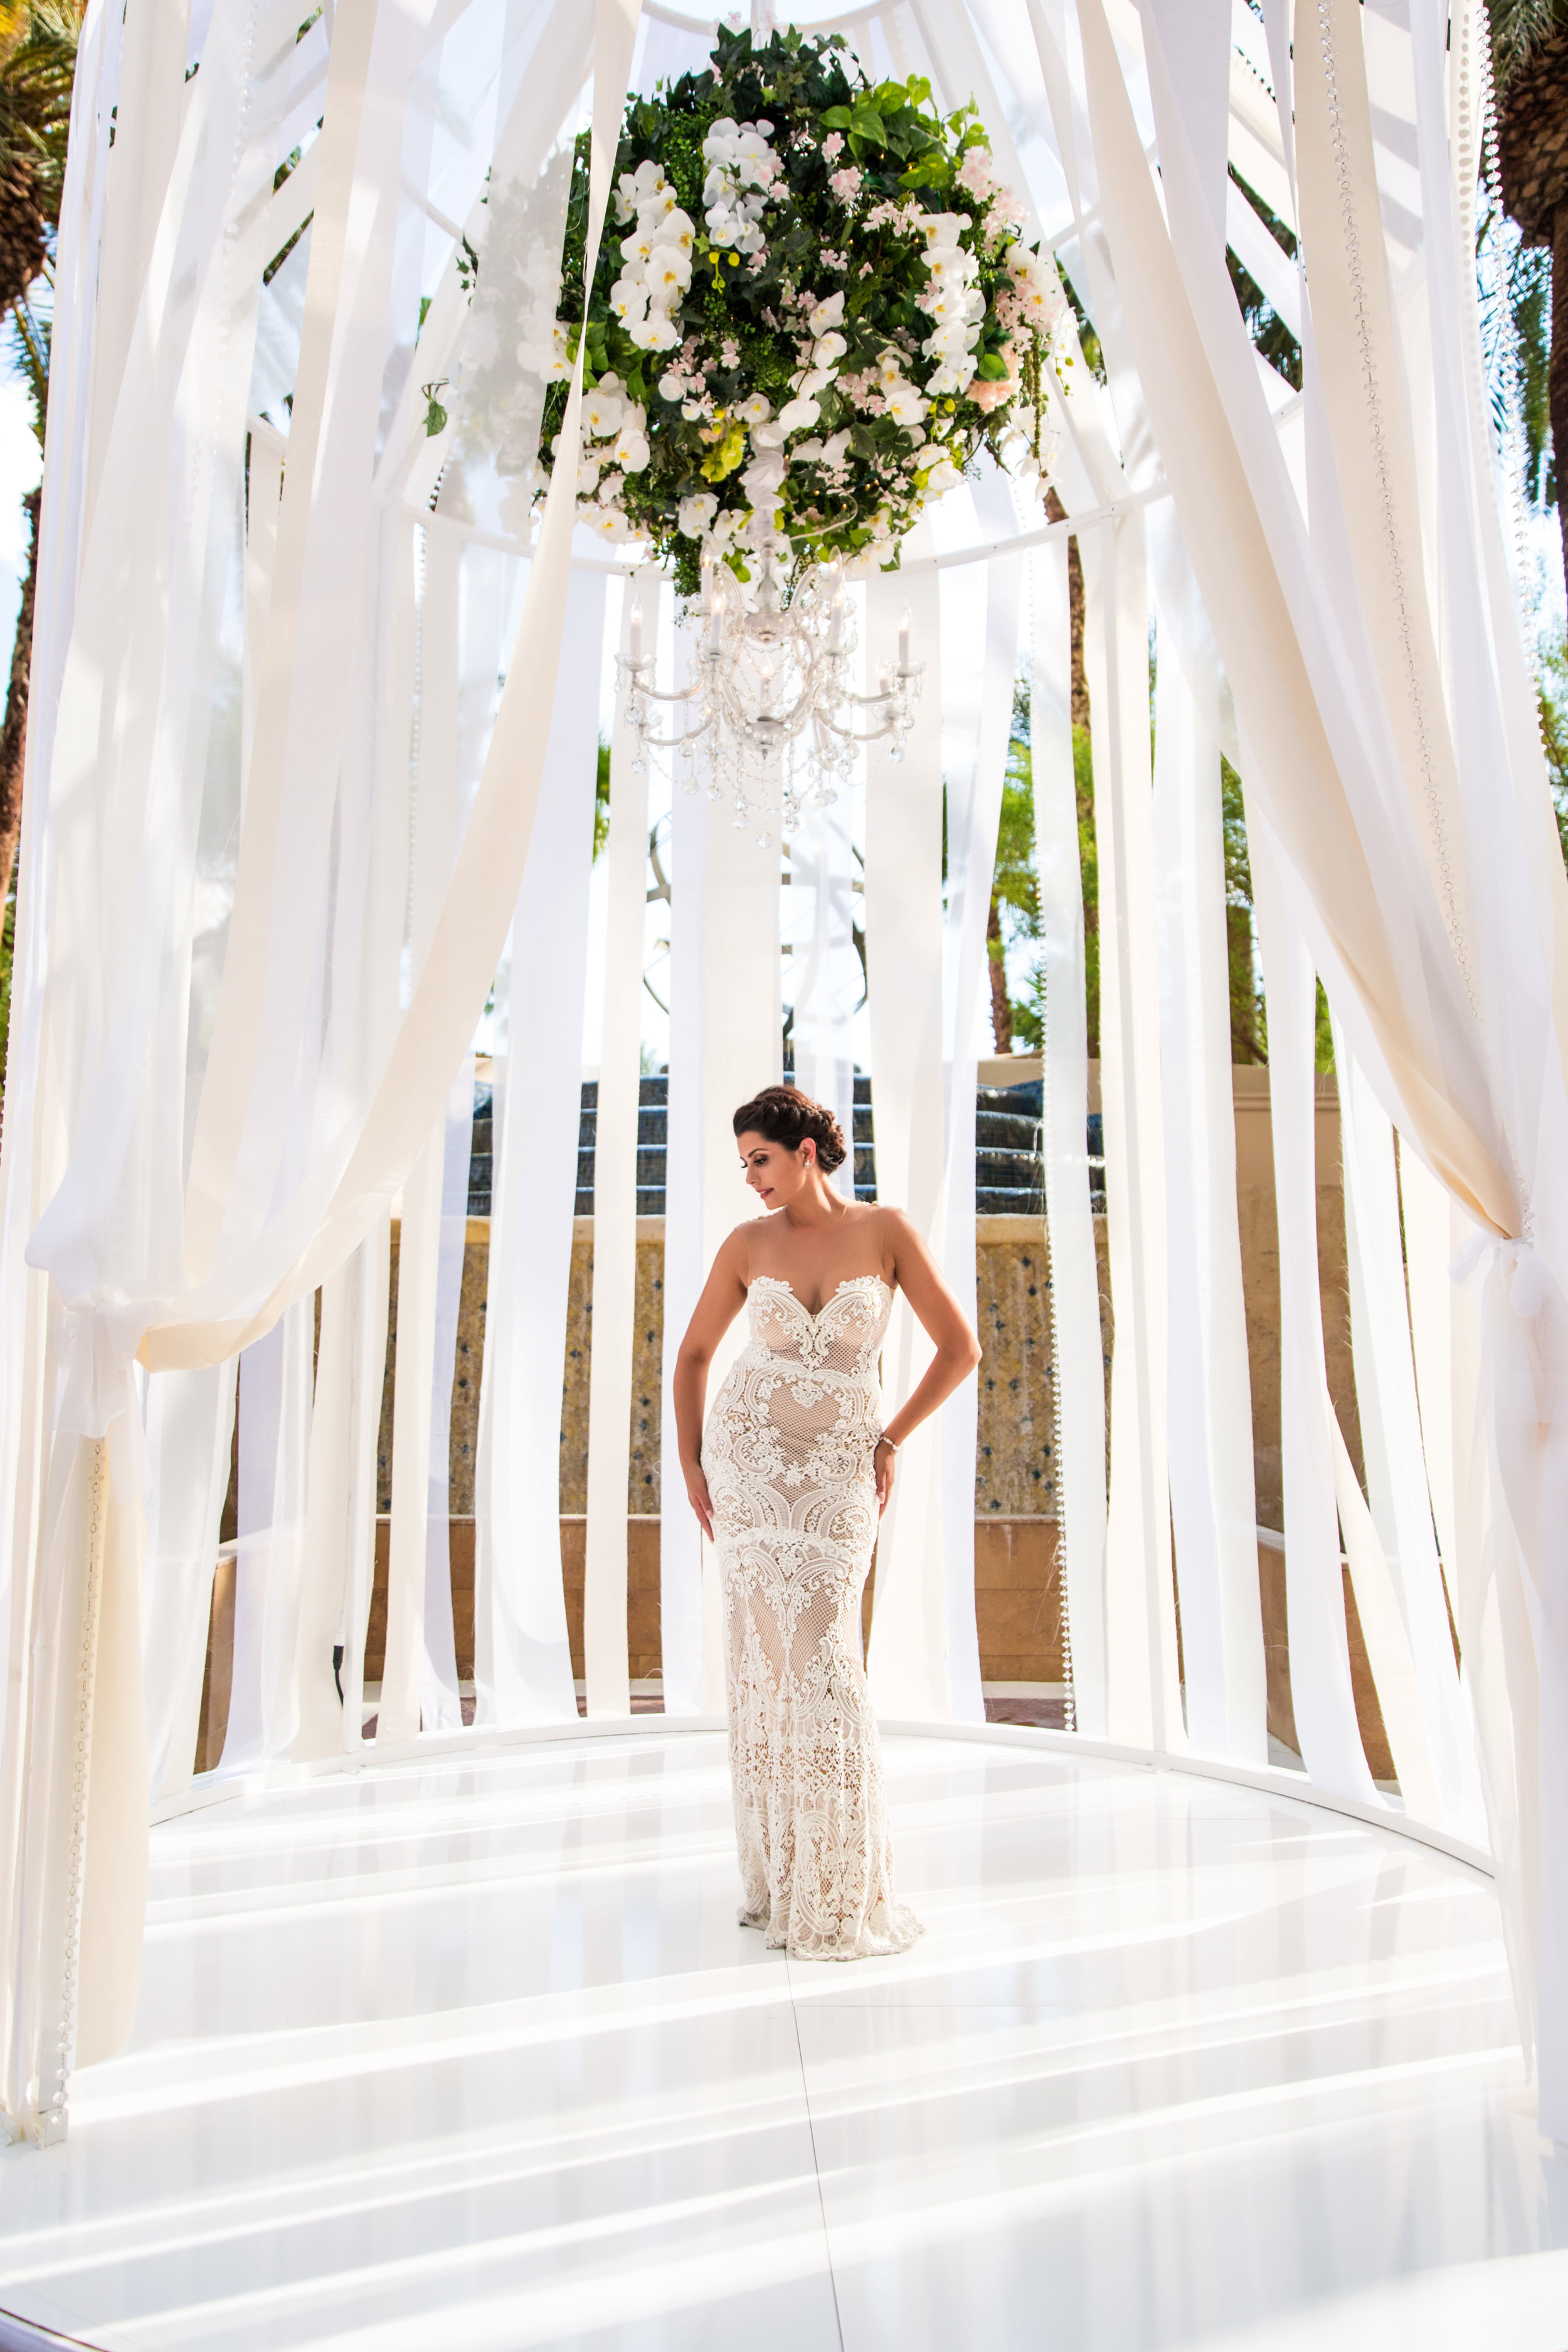 Bridal Portrait. Wedding Planning by  Andrea Eppolito Events  · Photography by  Shandro Photo   · Wedding Venue  Four Seasons Las Vegas  · Floral and Decor by  Destination by Design  · Cake by  Four Seasons Las Vegas  · Chandeliers and Lighting by  LED Unplugged  · Dress by  Berta